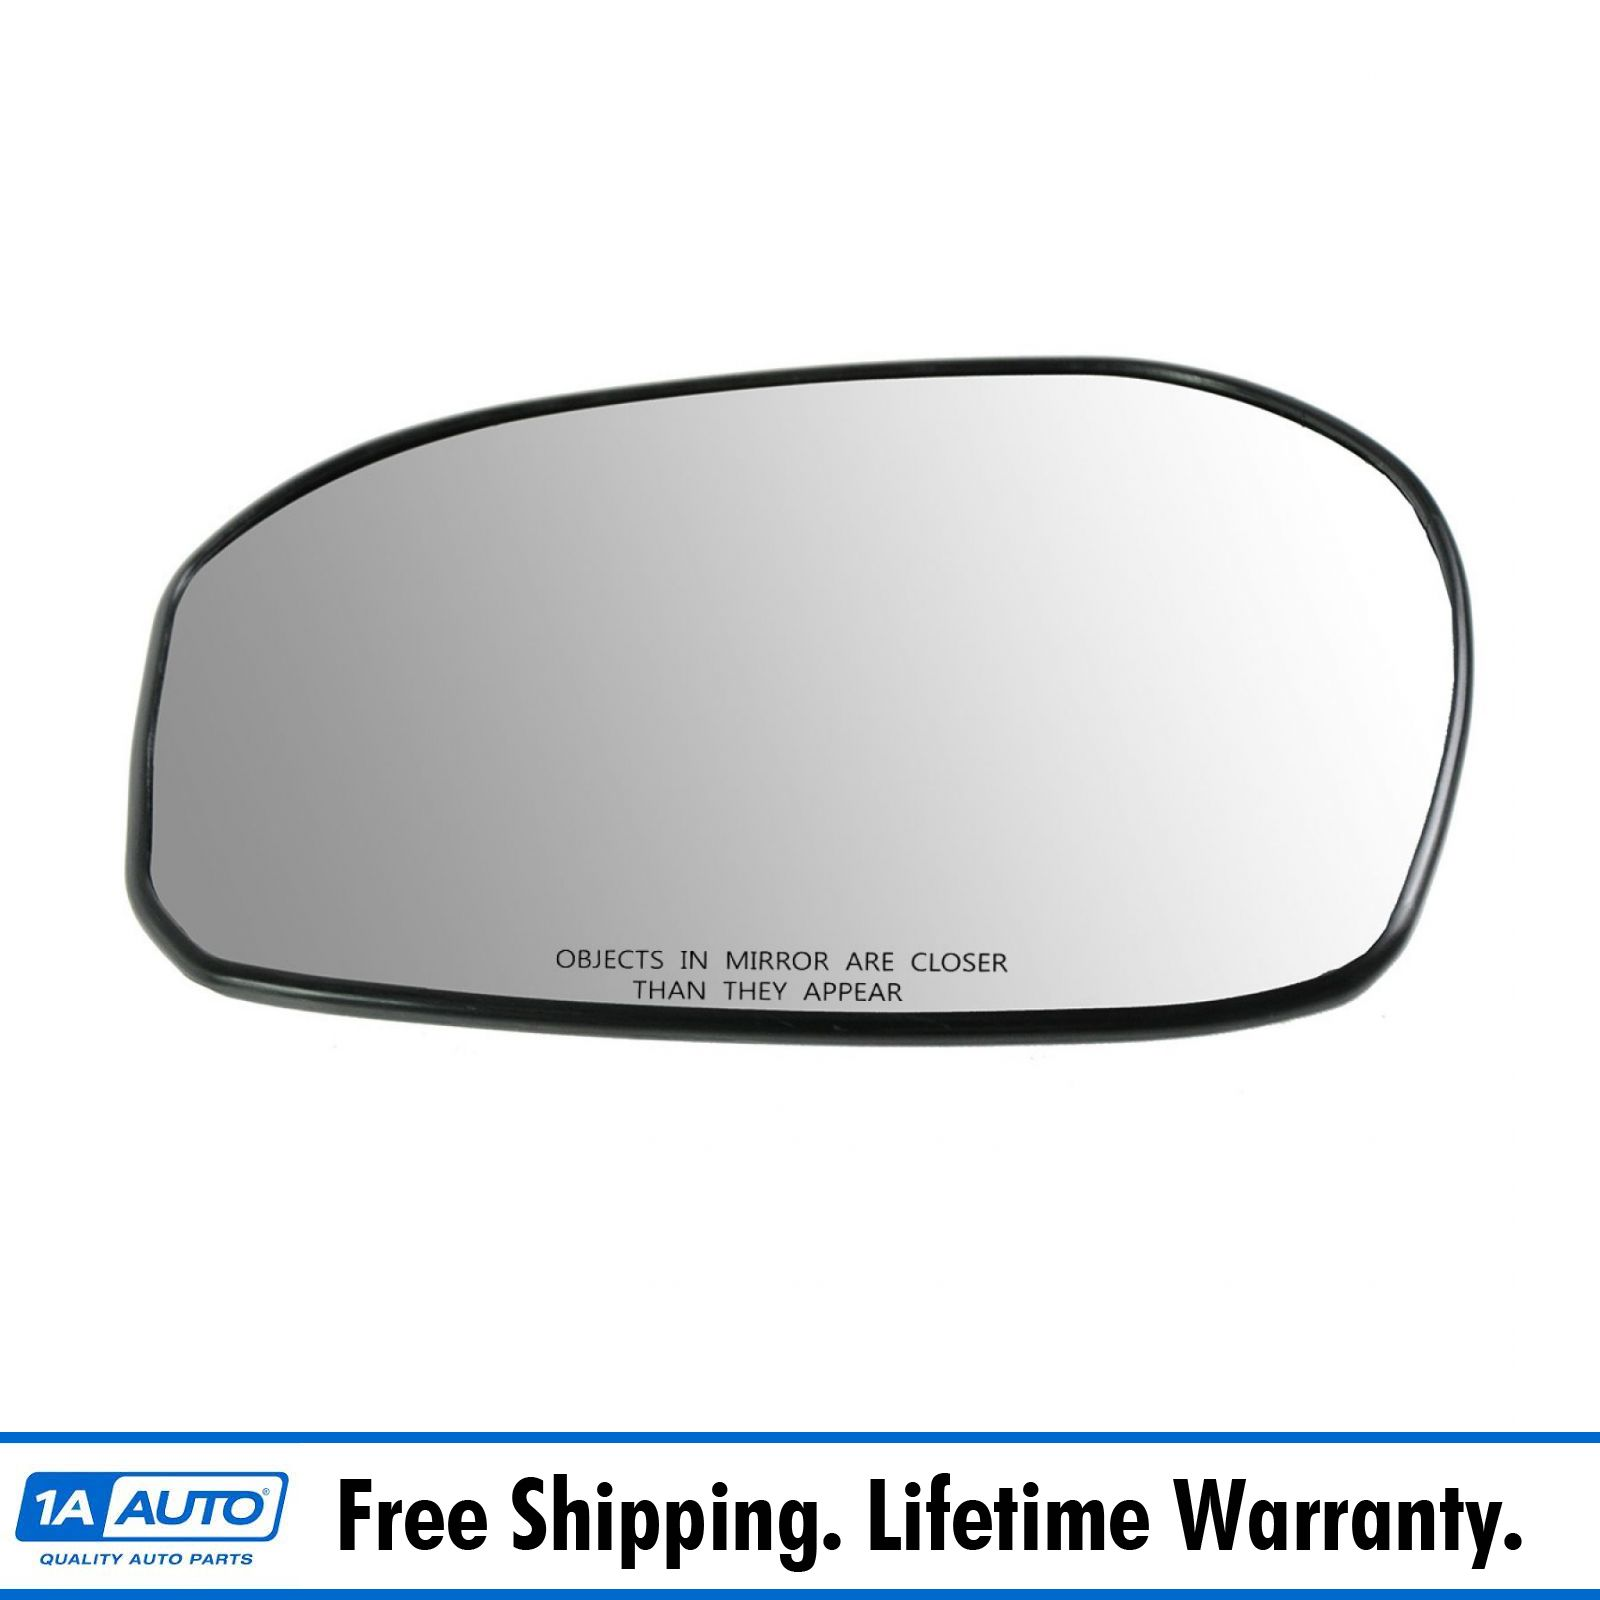 NEW For 2007-2008 Honda Fit Passenger Right RH Side Convex Mirror Glass #5235